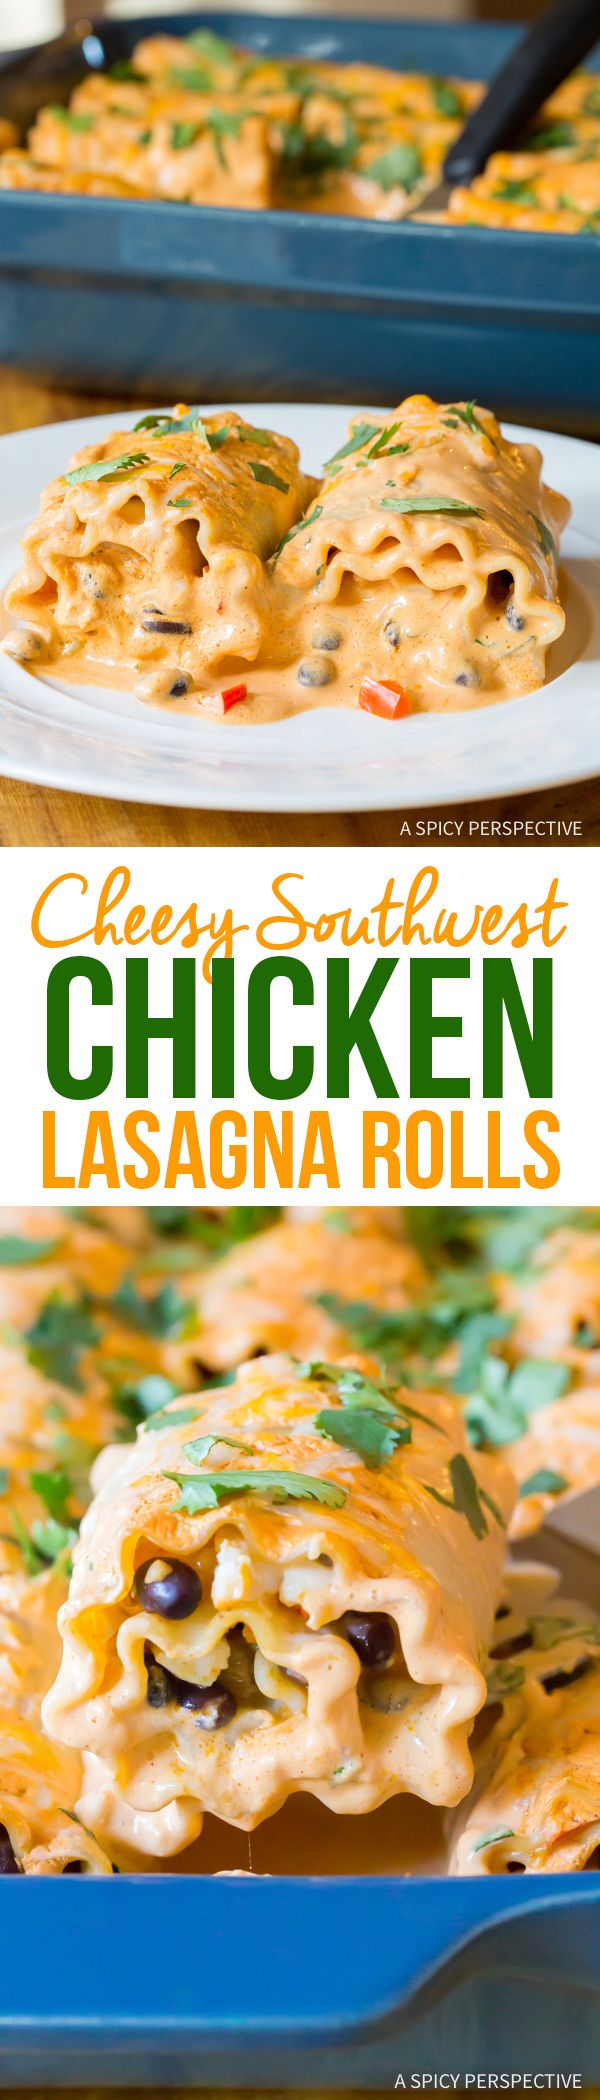 Cheesy Southwest Chicken Lasagna Rolls from @spic